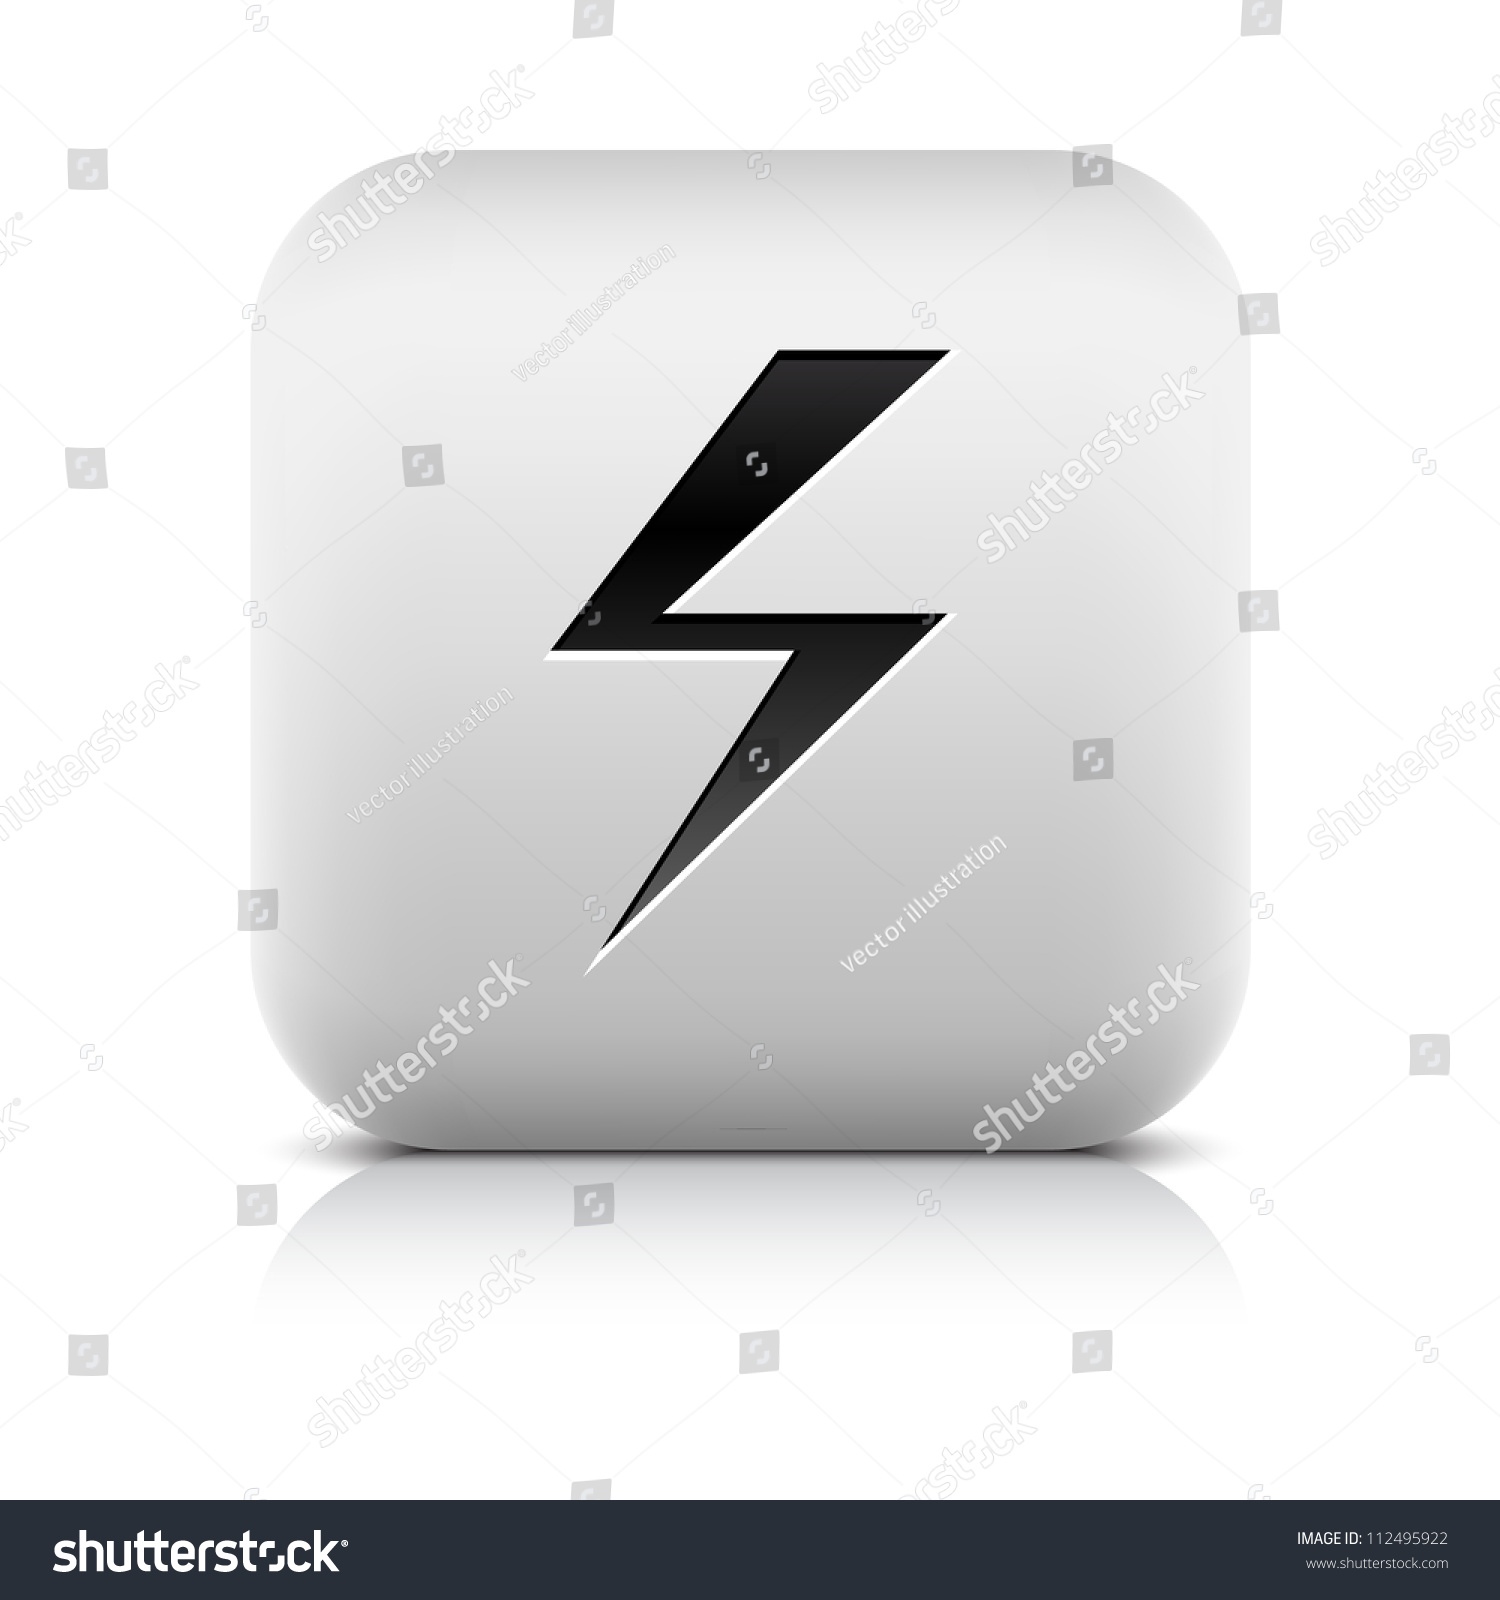 Charming How To Wire Ssr Thin Ibanez Pickup Wiring Round Ibanez Rg Wiring Fender S1 Switch Wiring Diagram Young Coil Tap Wiring YellowStrat Wiring Bridge Tone Stone Web 20 Button High Voltage Stock Vector 112495922   Shutterstock